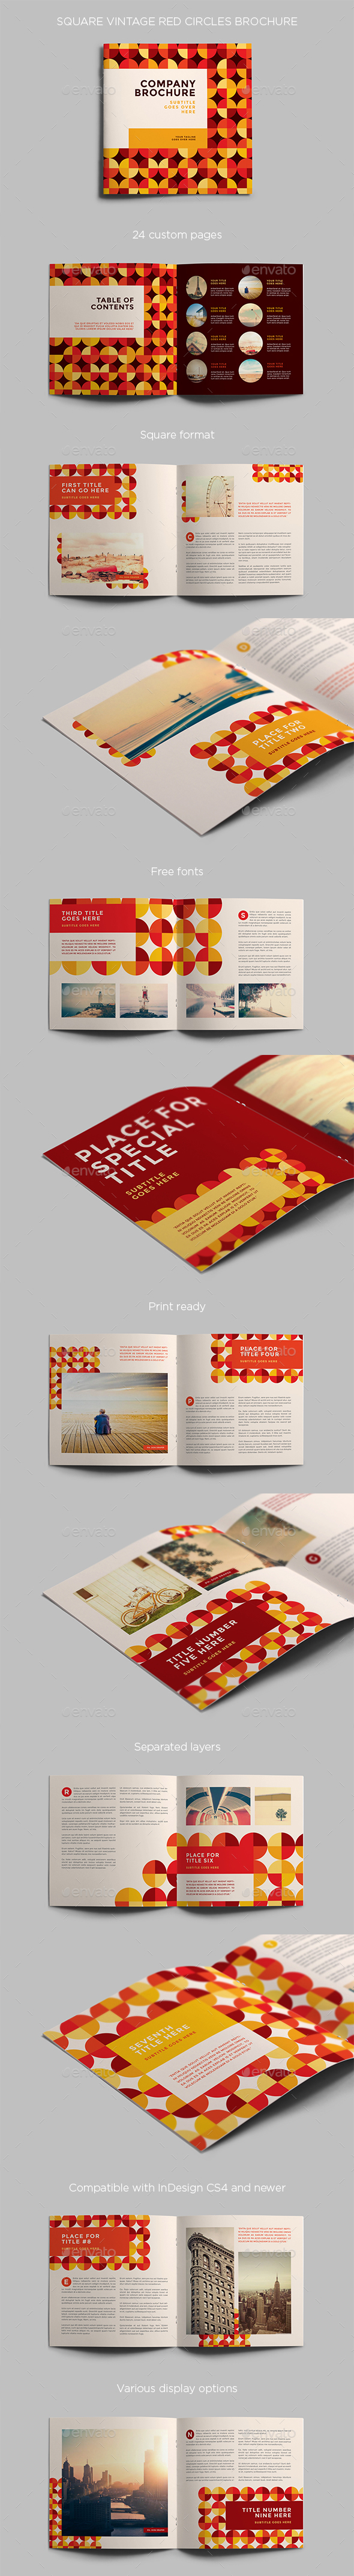 Square Vintage Red Circles Brochure - Brochures Print Templates